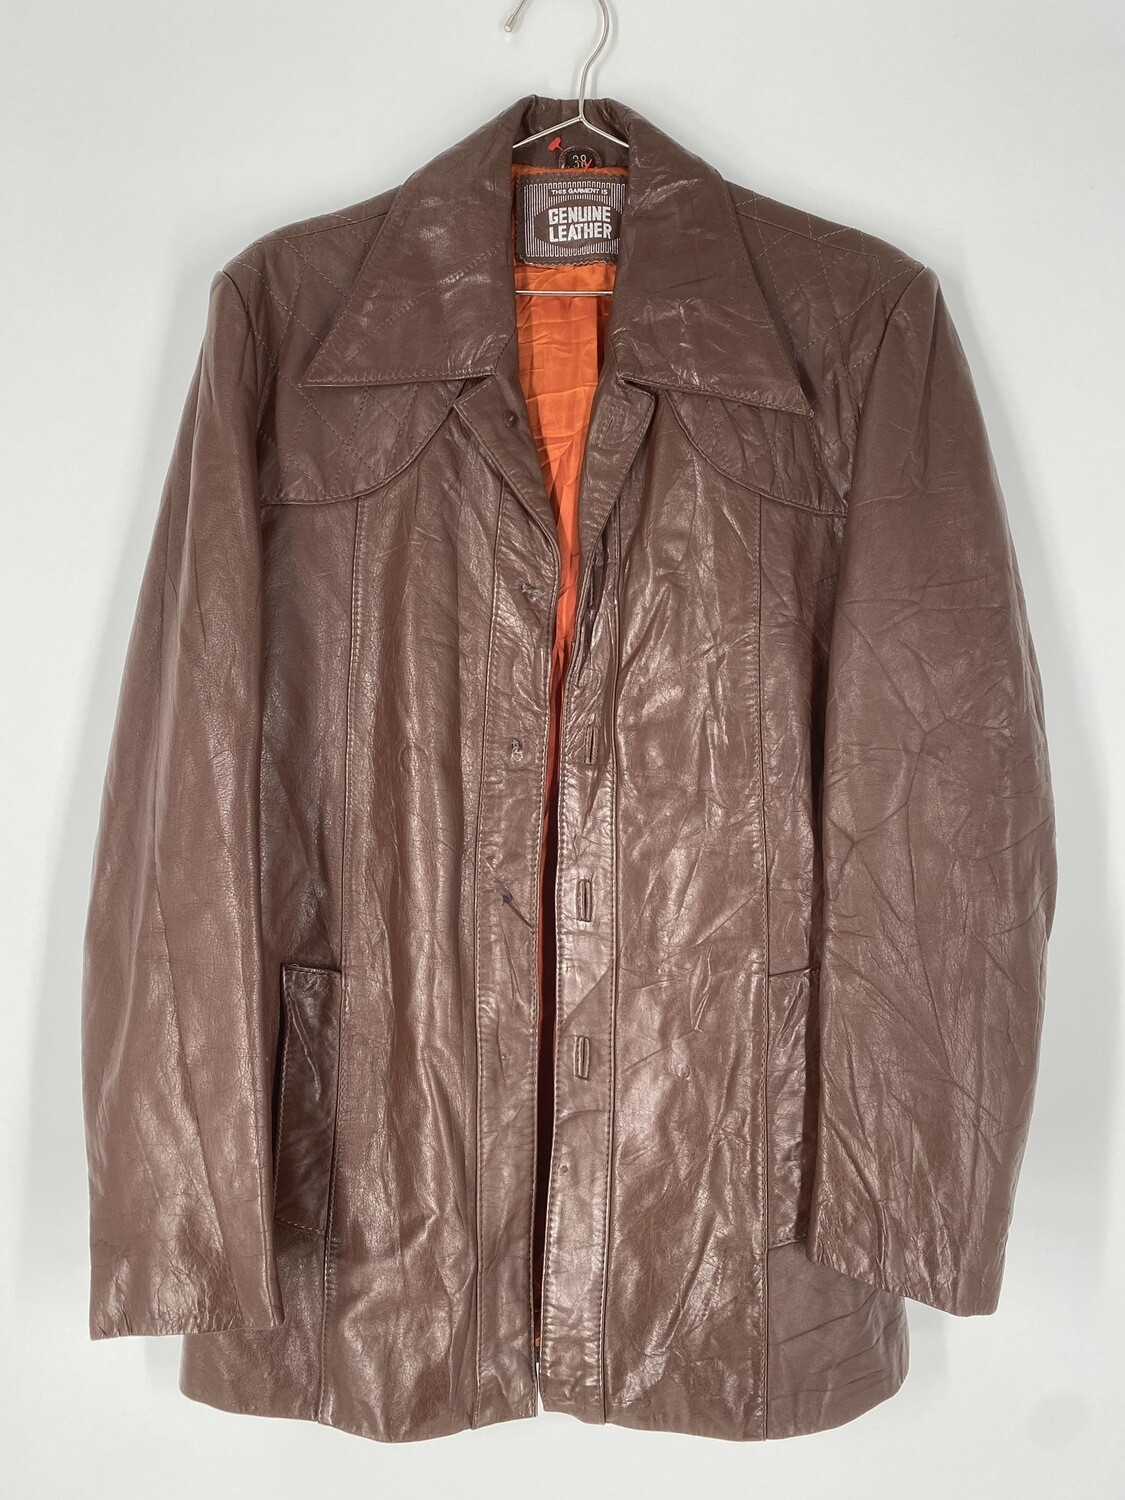 Genuine Leather Brown Leather Jacket With Quilted Shoulders Size M